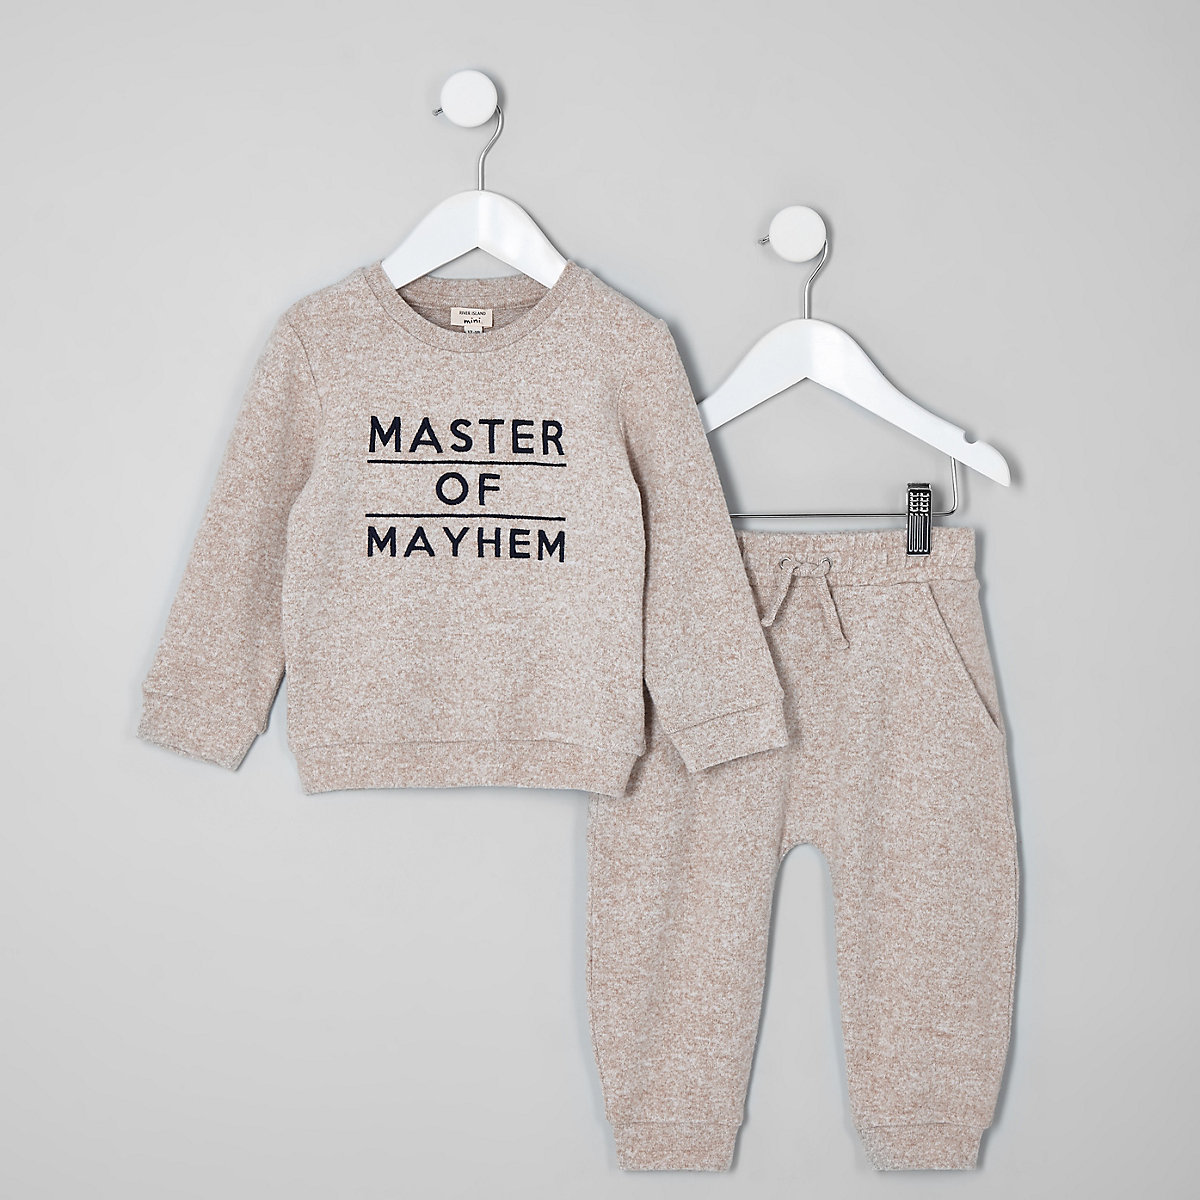 Mini boys grey 'master of mayhem' outfit